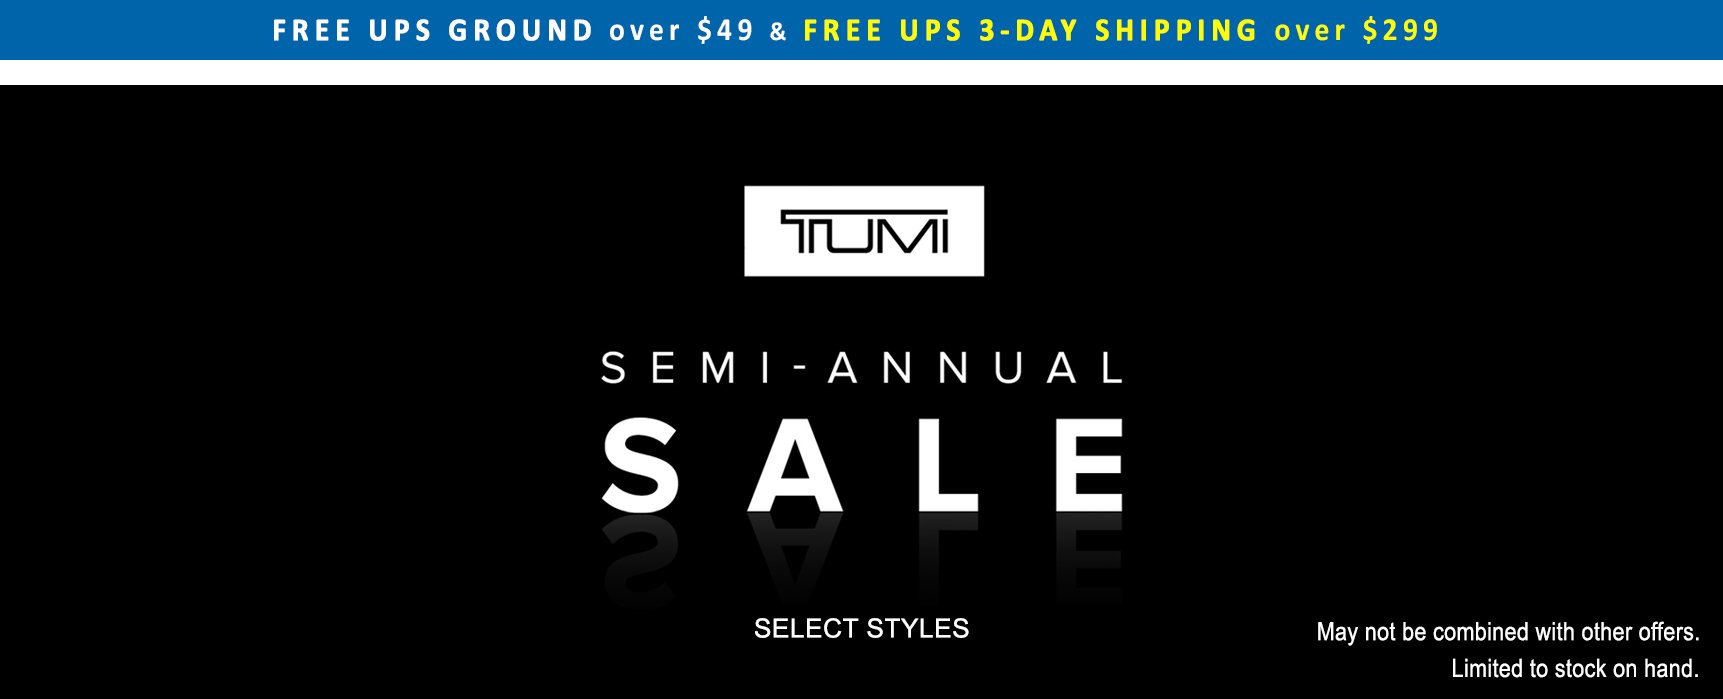 TUMI Semi-Annual Sale